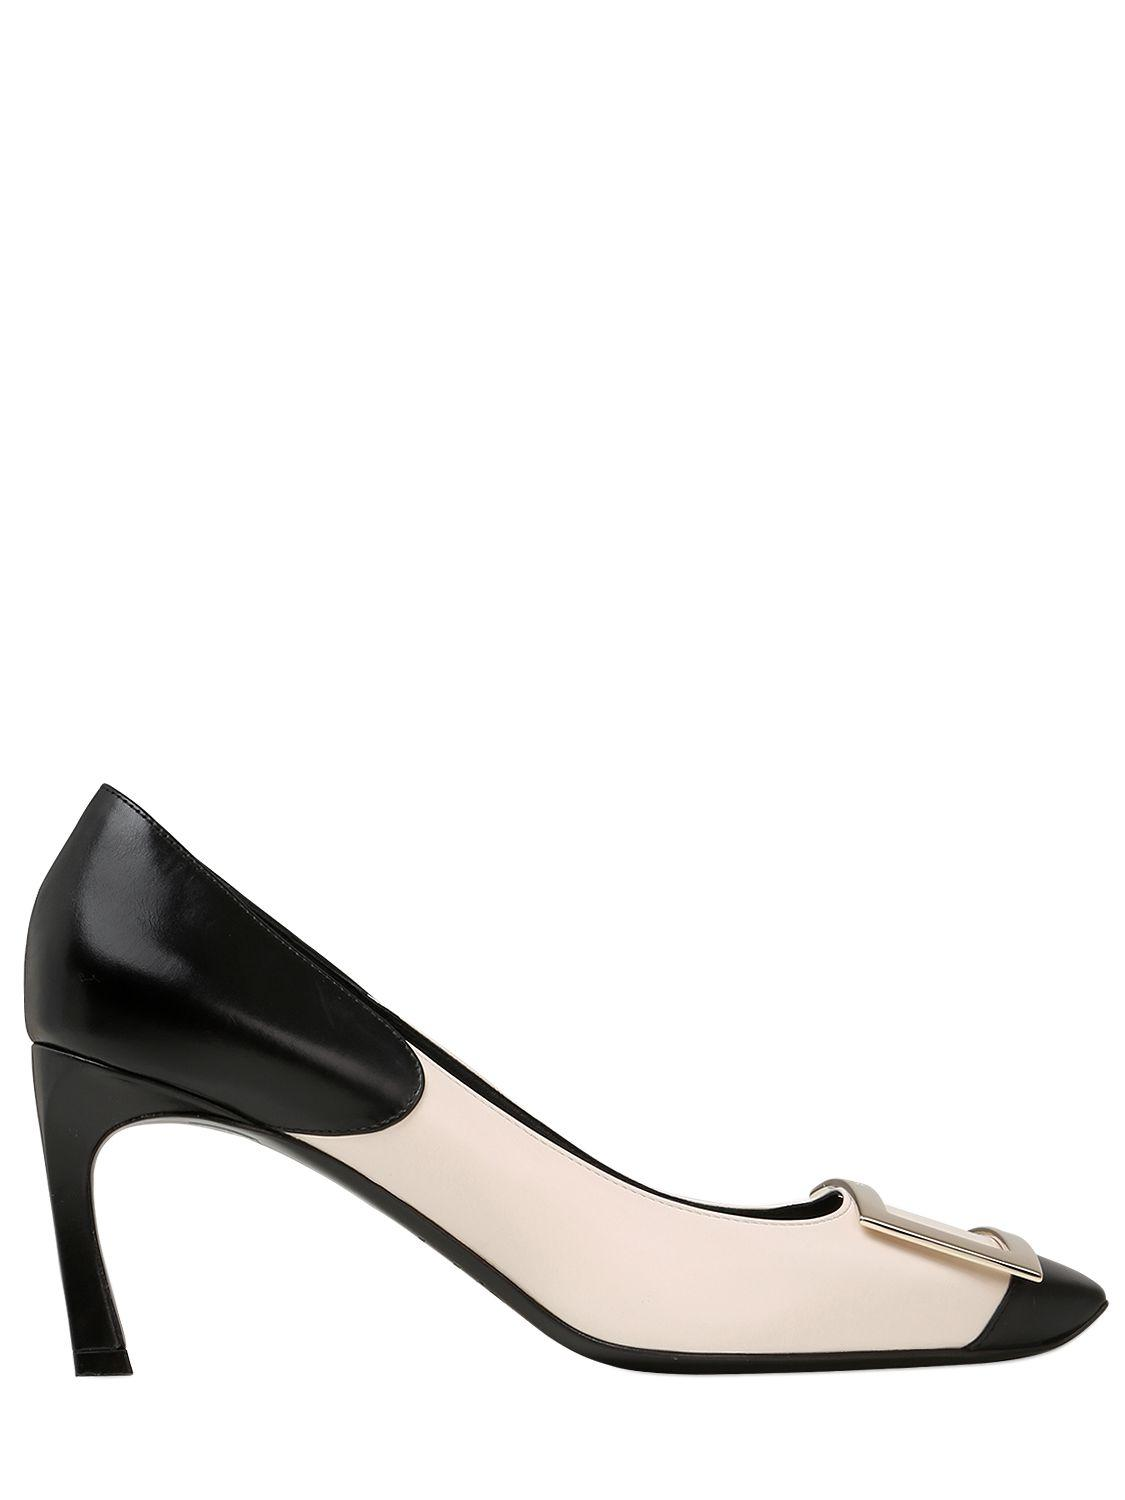 851bccdf2f10 Lyst - Roger Vivier 70mm Trompette Two Tone Leather Pumps in Black